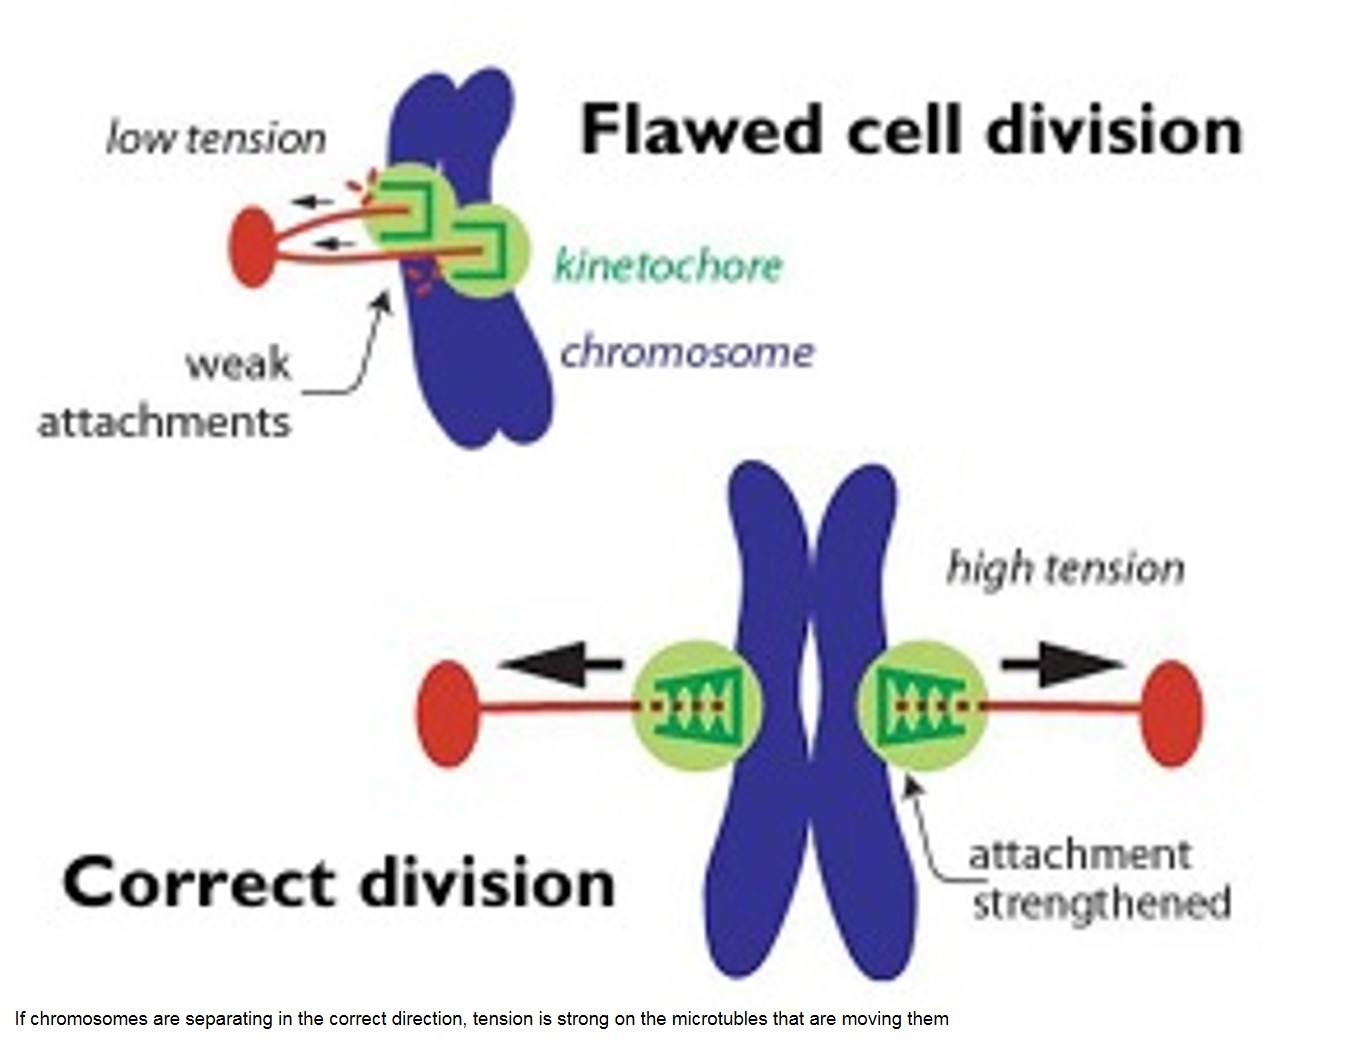 Tension-sensitive molecule helps cells divide chromosomes accurately